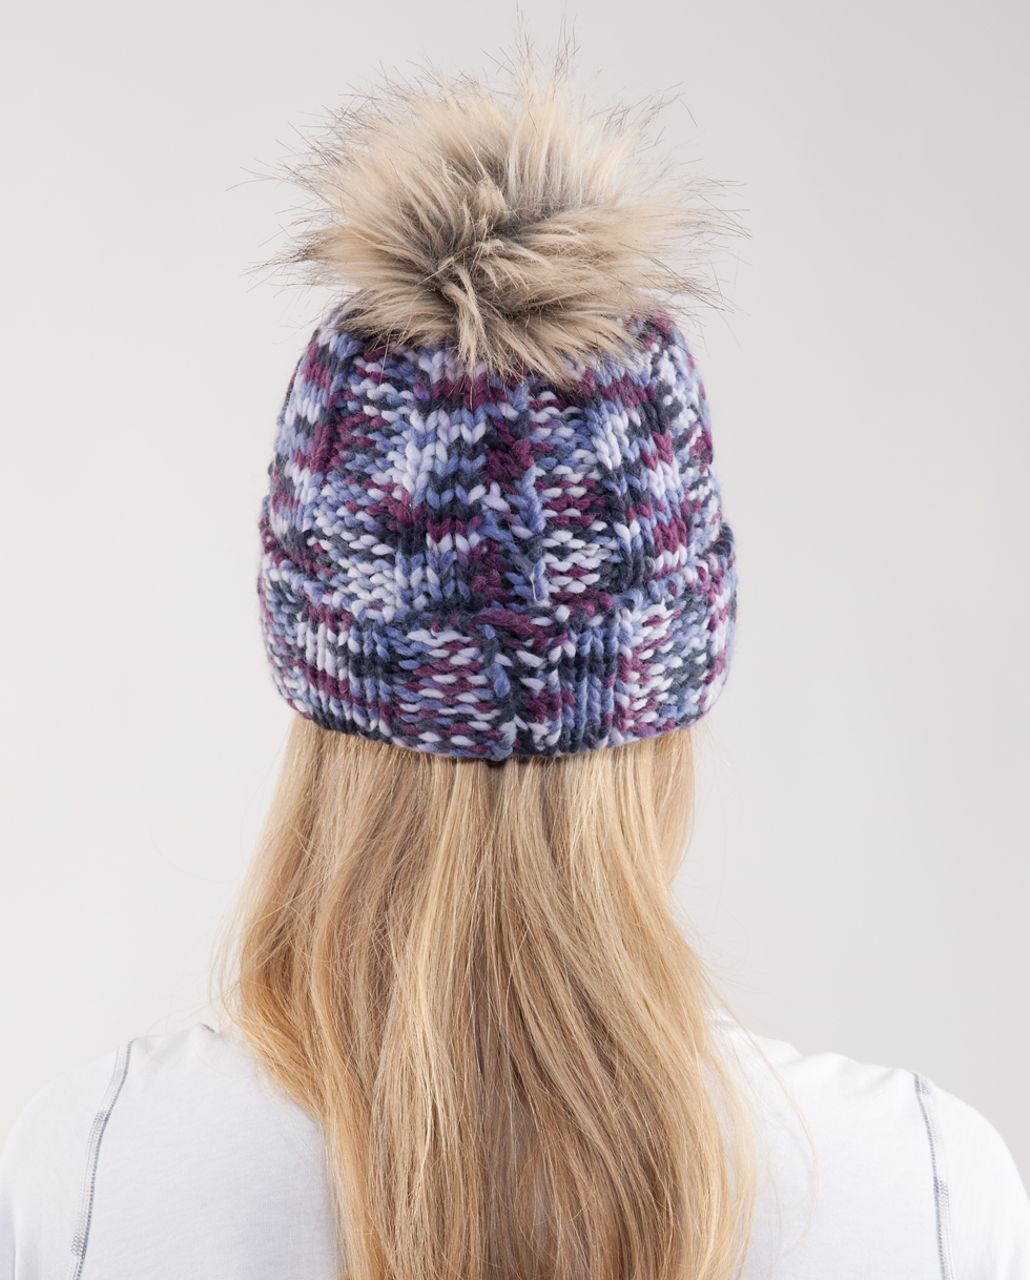 Lululemon Toasty Toque - Black Swan Lilac Persian Purple Plum Space Dye